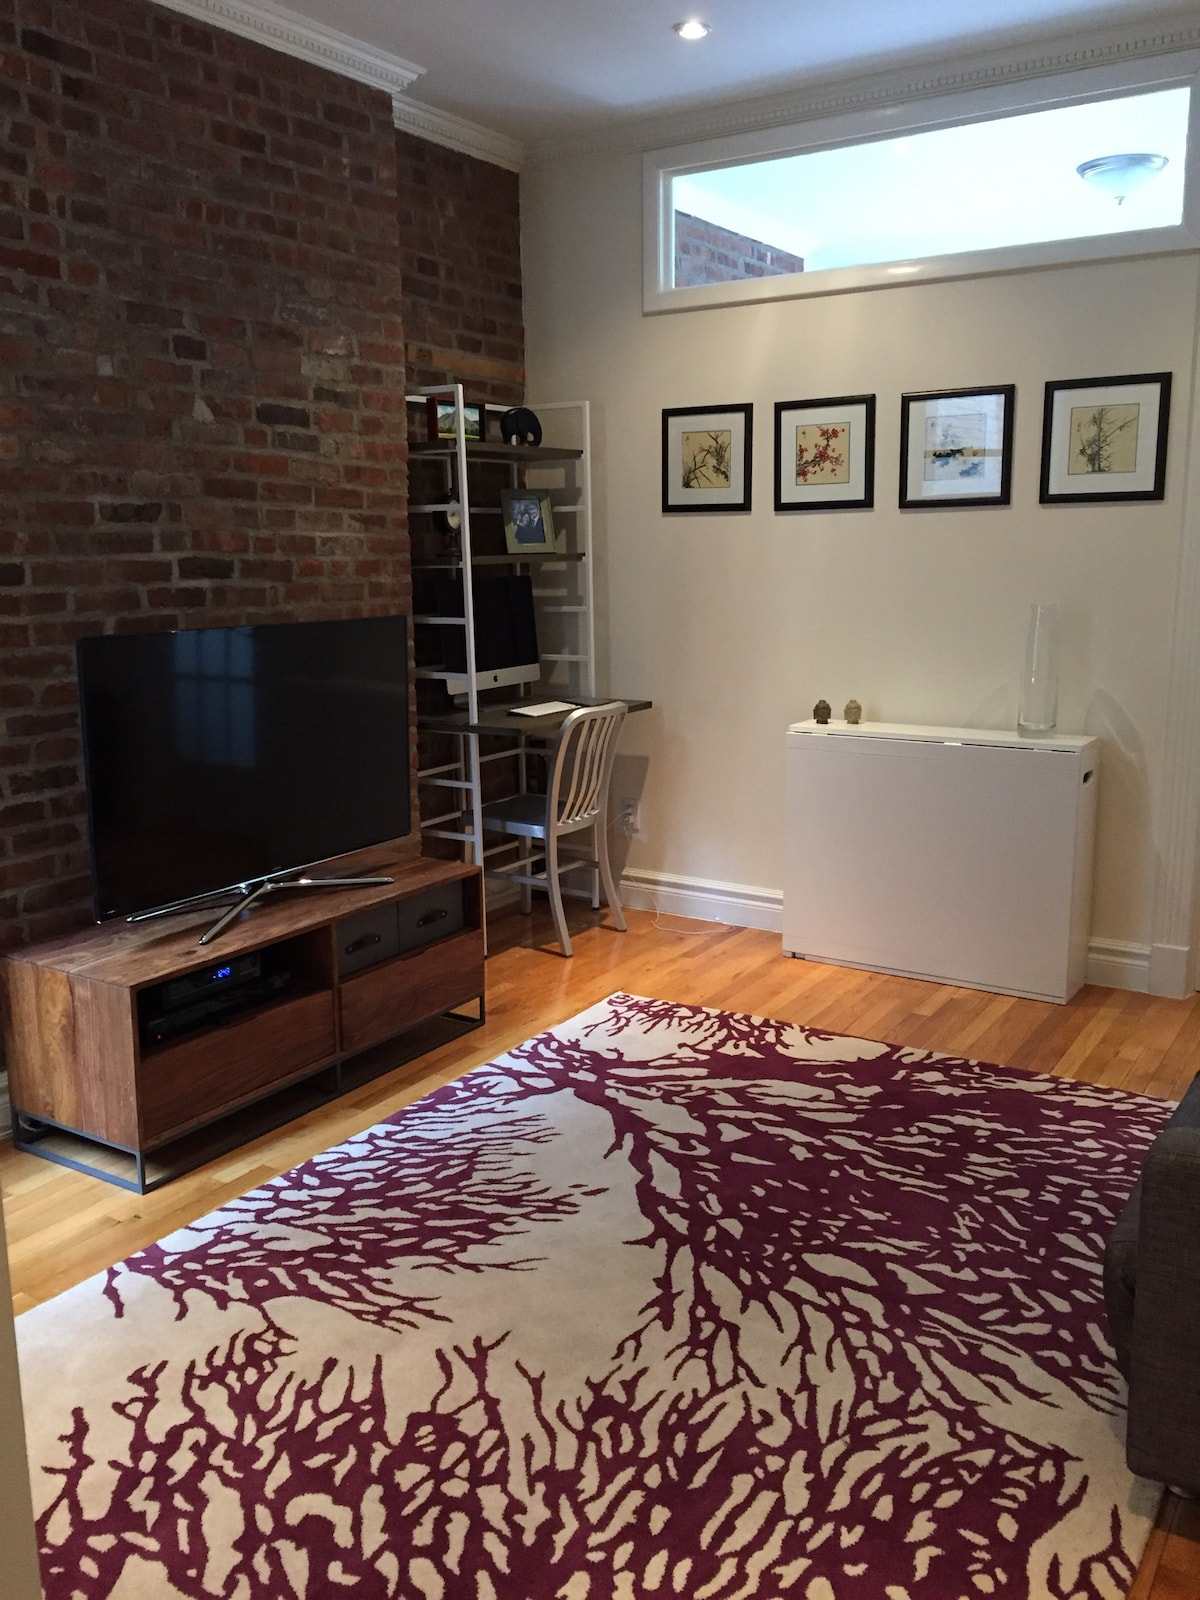 Stylish 1 BR in the heart of Nolita